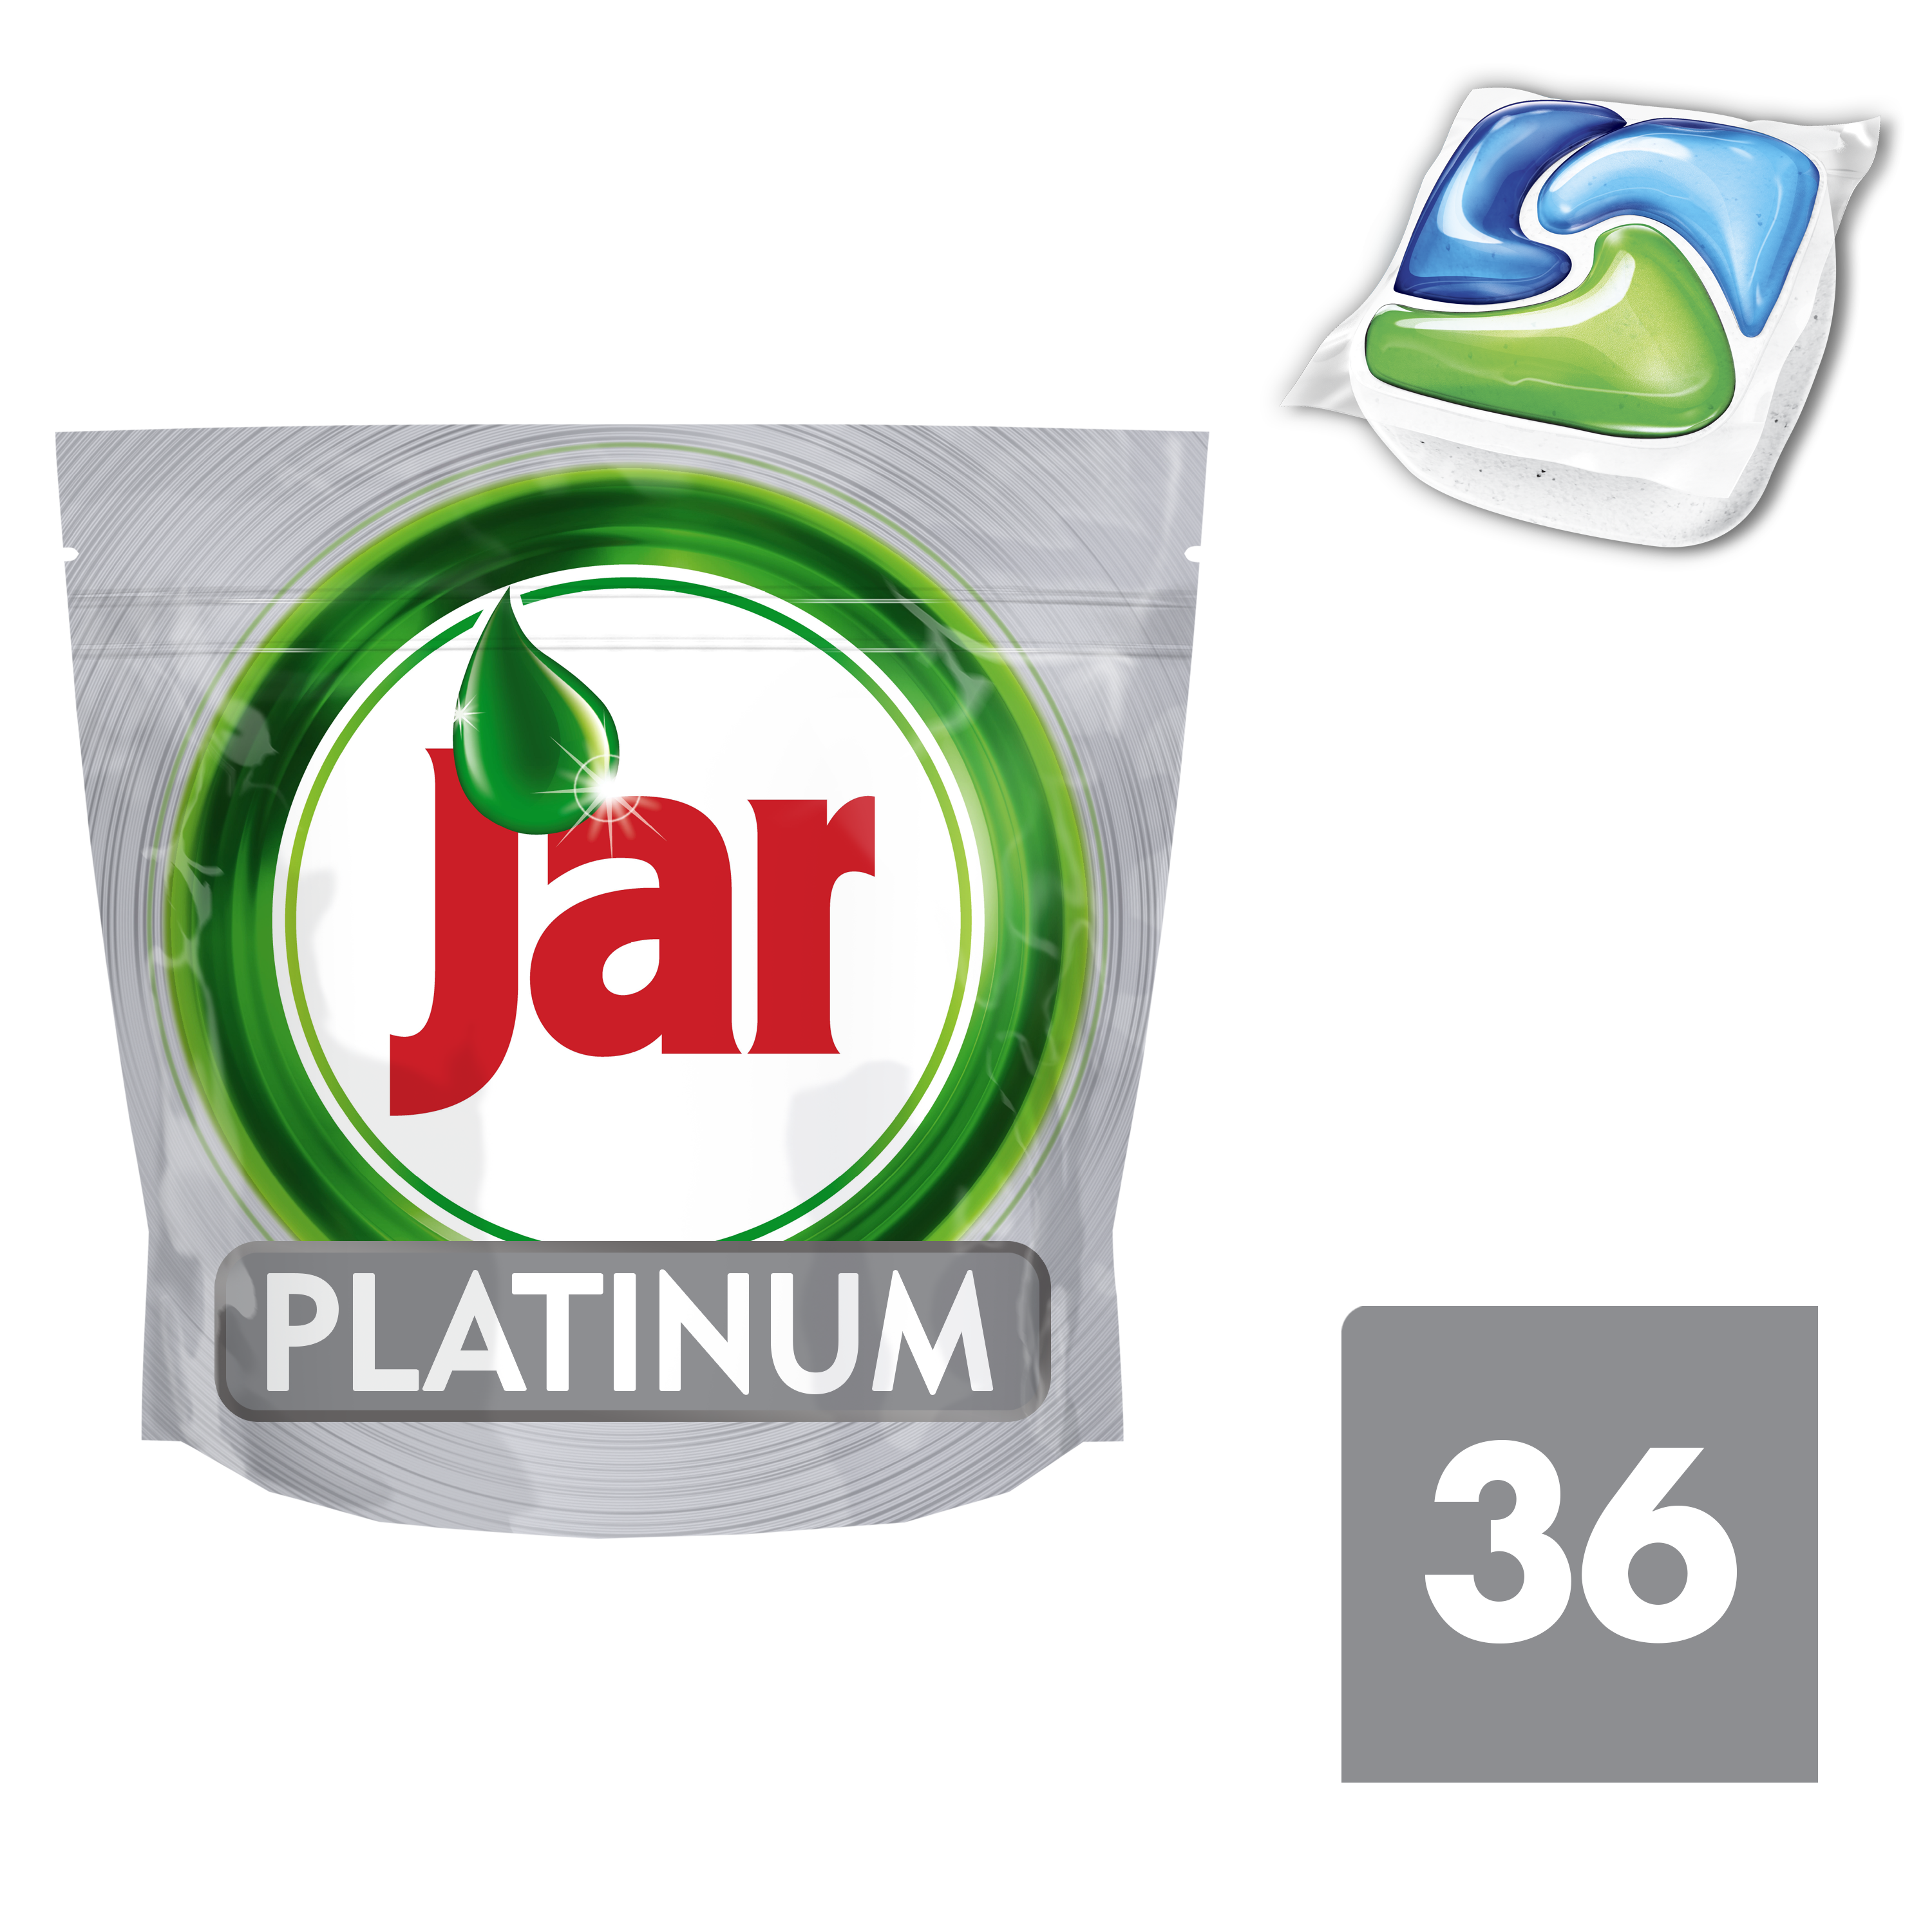 JAR Platinum Green 36ks - kapsle do myčky